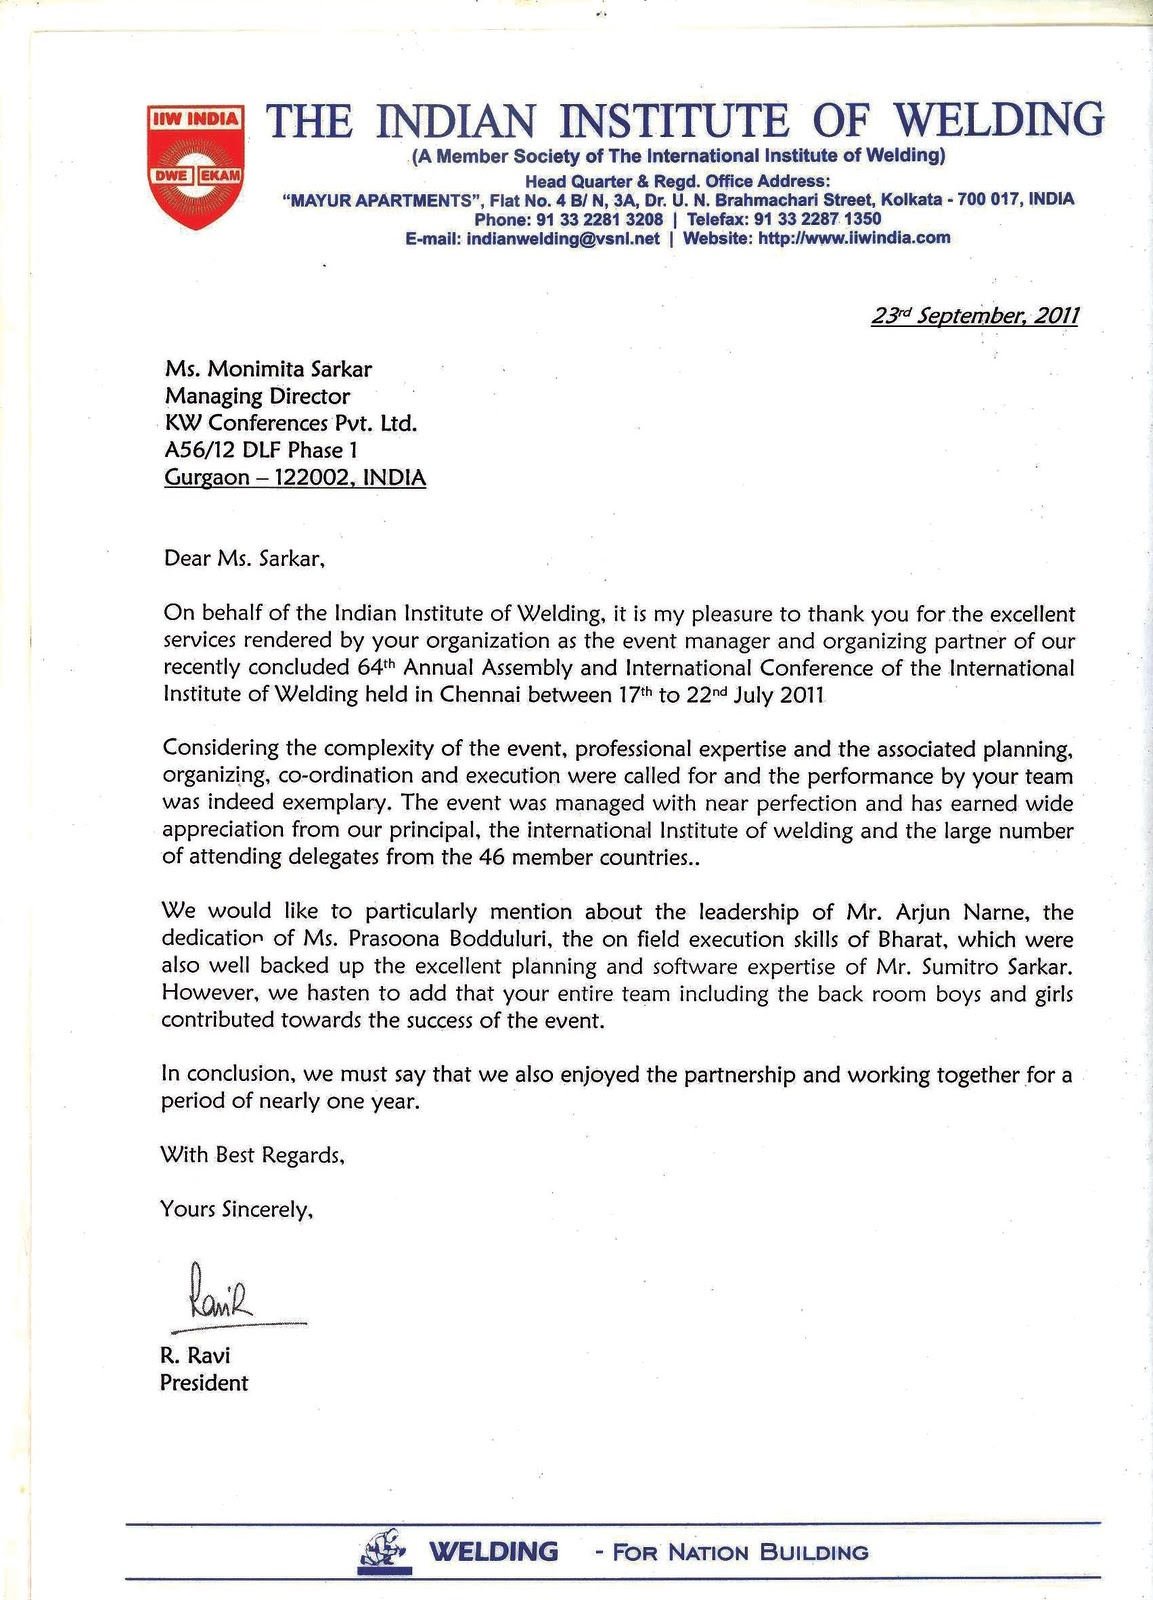 kw conferences letter of appreciation given by r ravi president letter of appreciation given by r ravi president of the n institute of welding for the 64th annual assembly and international congress of iiw